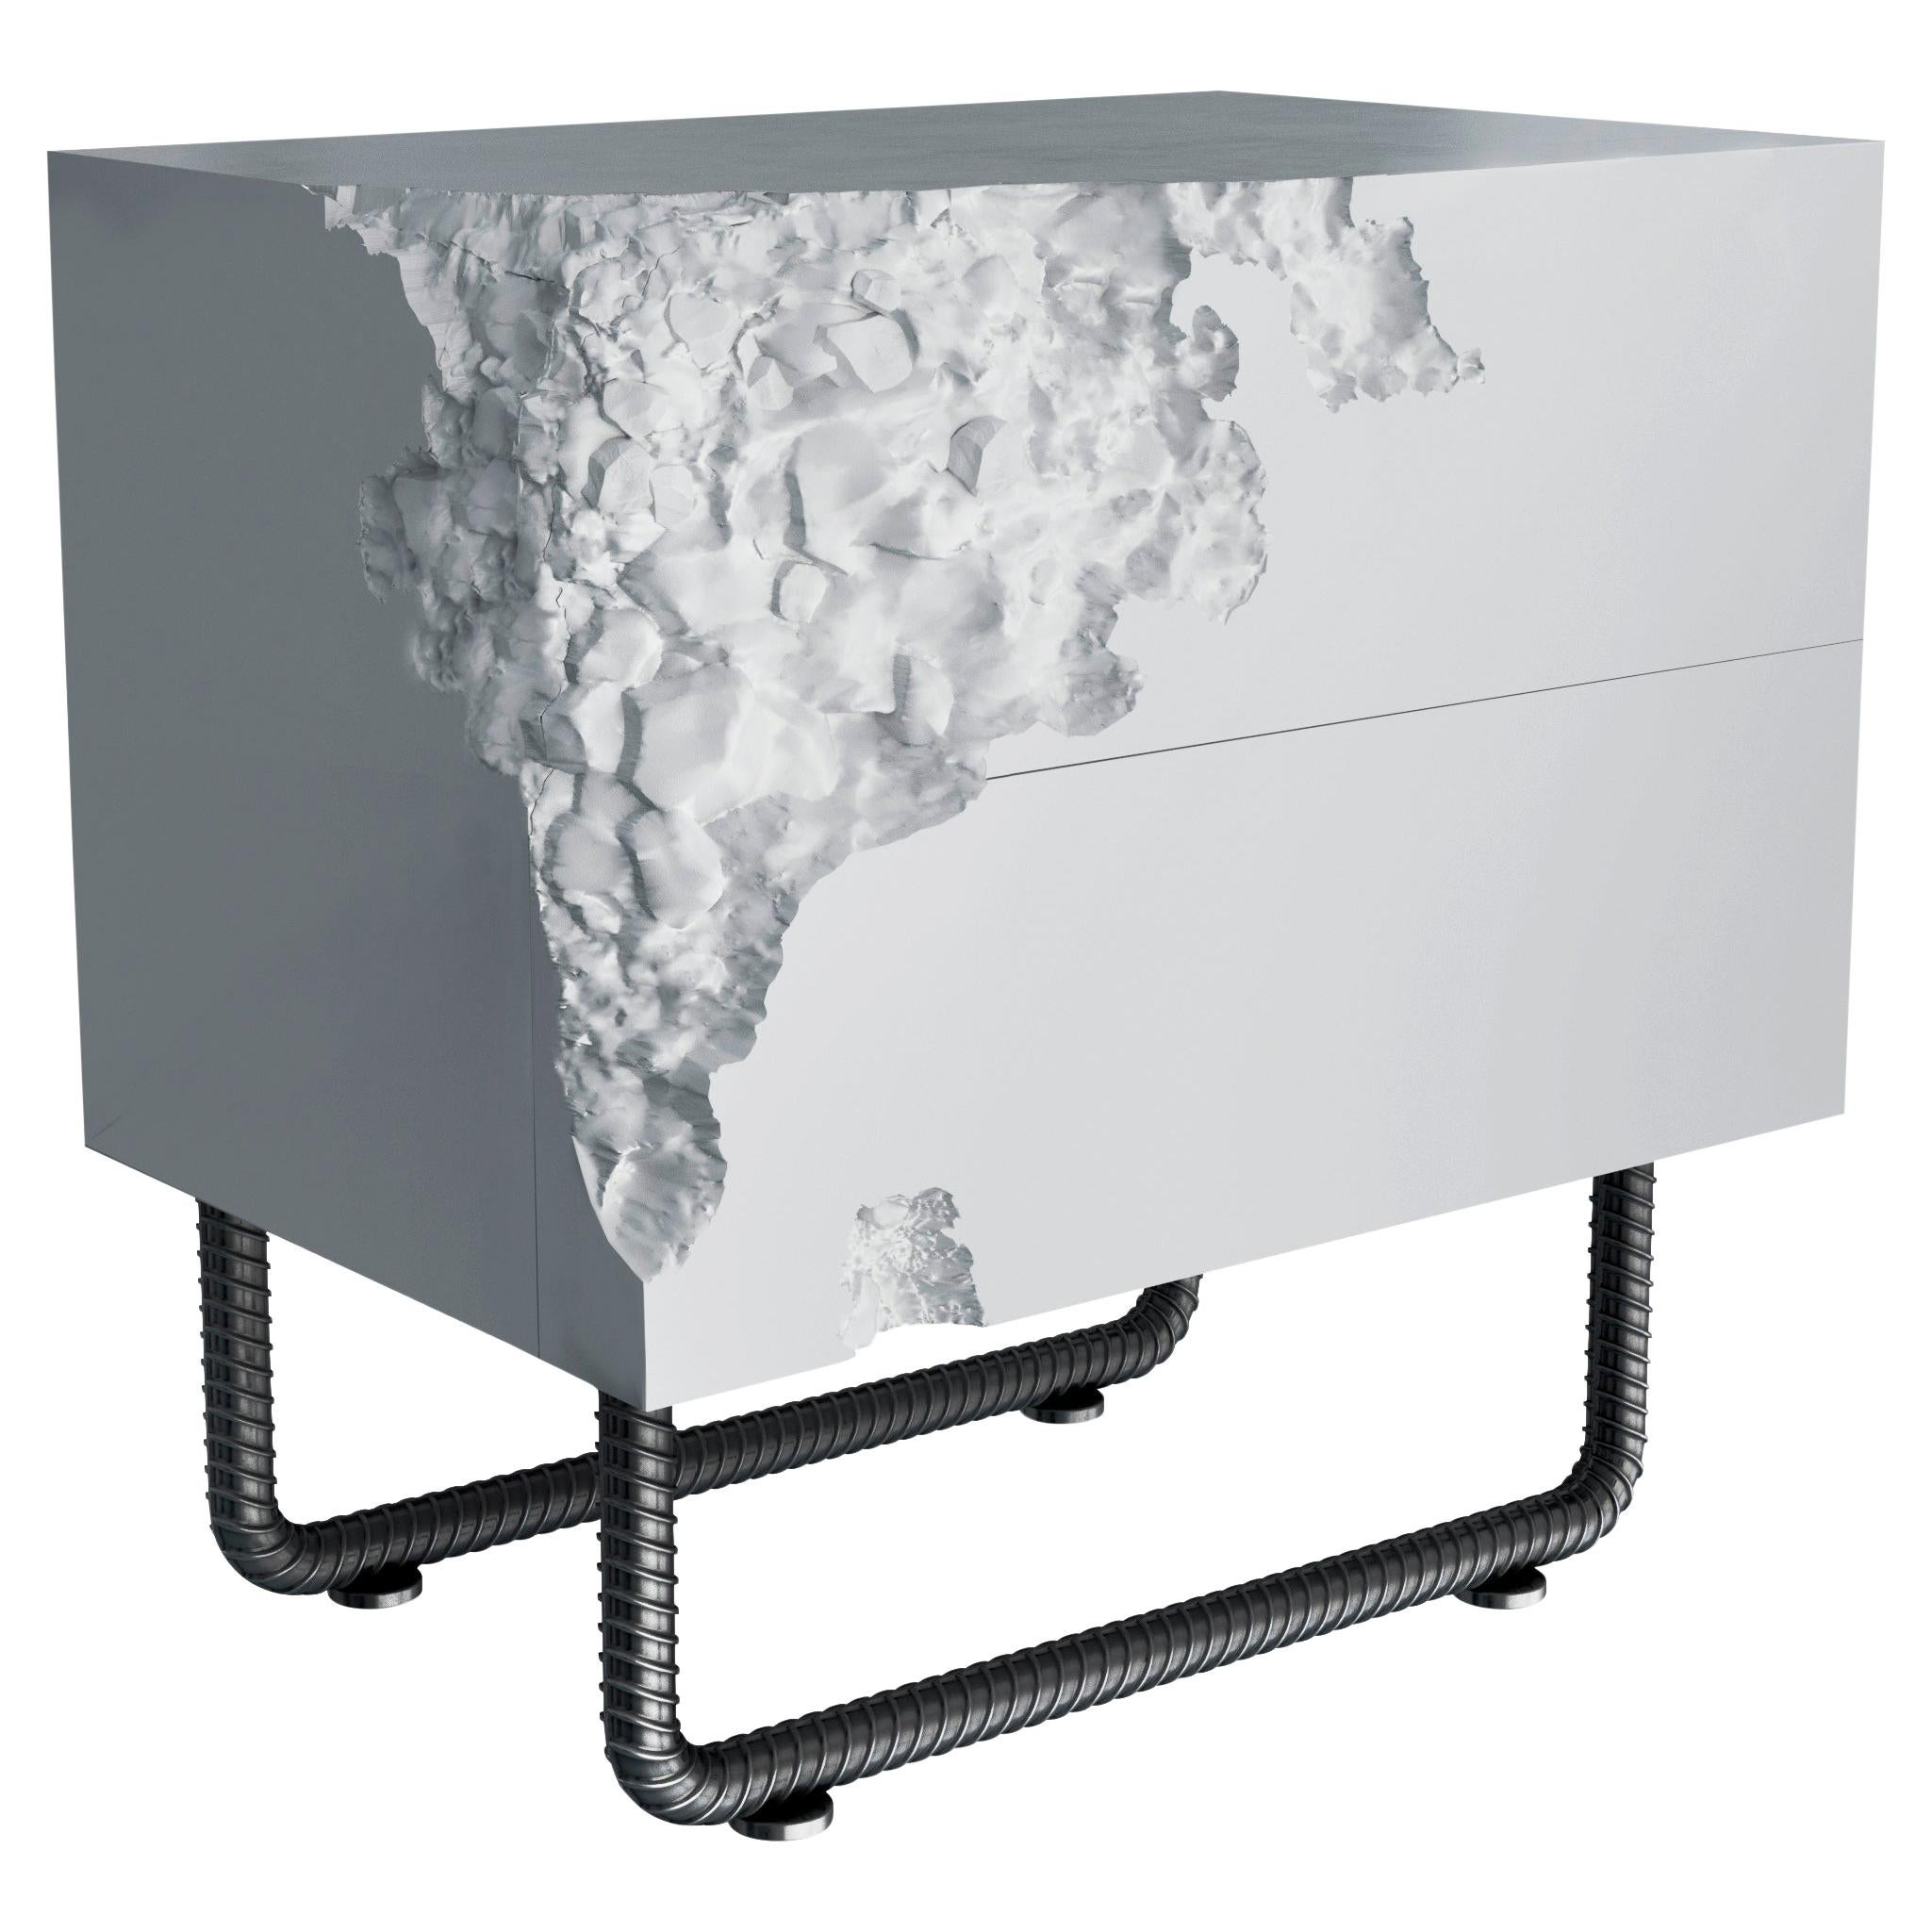 White Bedside Table Breakfree Collection, Perfect Item for Your Bedroom Space